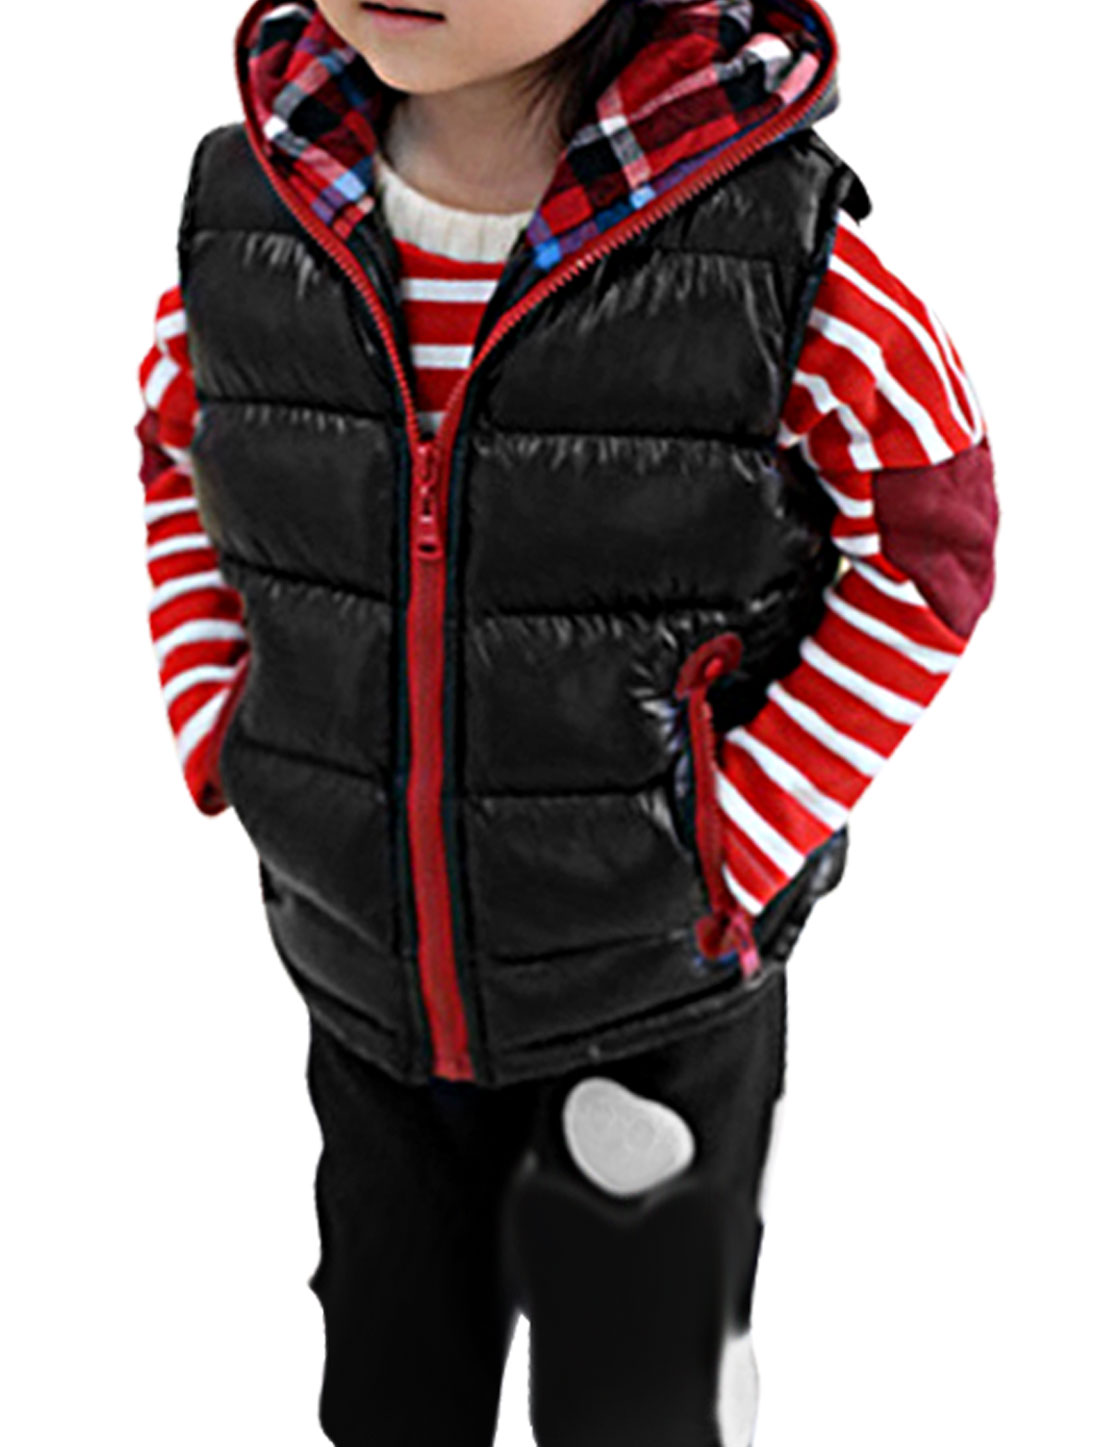 Girls Hooded Zip Closure Pockets Front Warm Vest Black 7